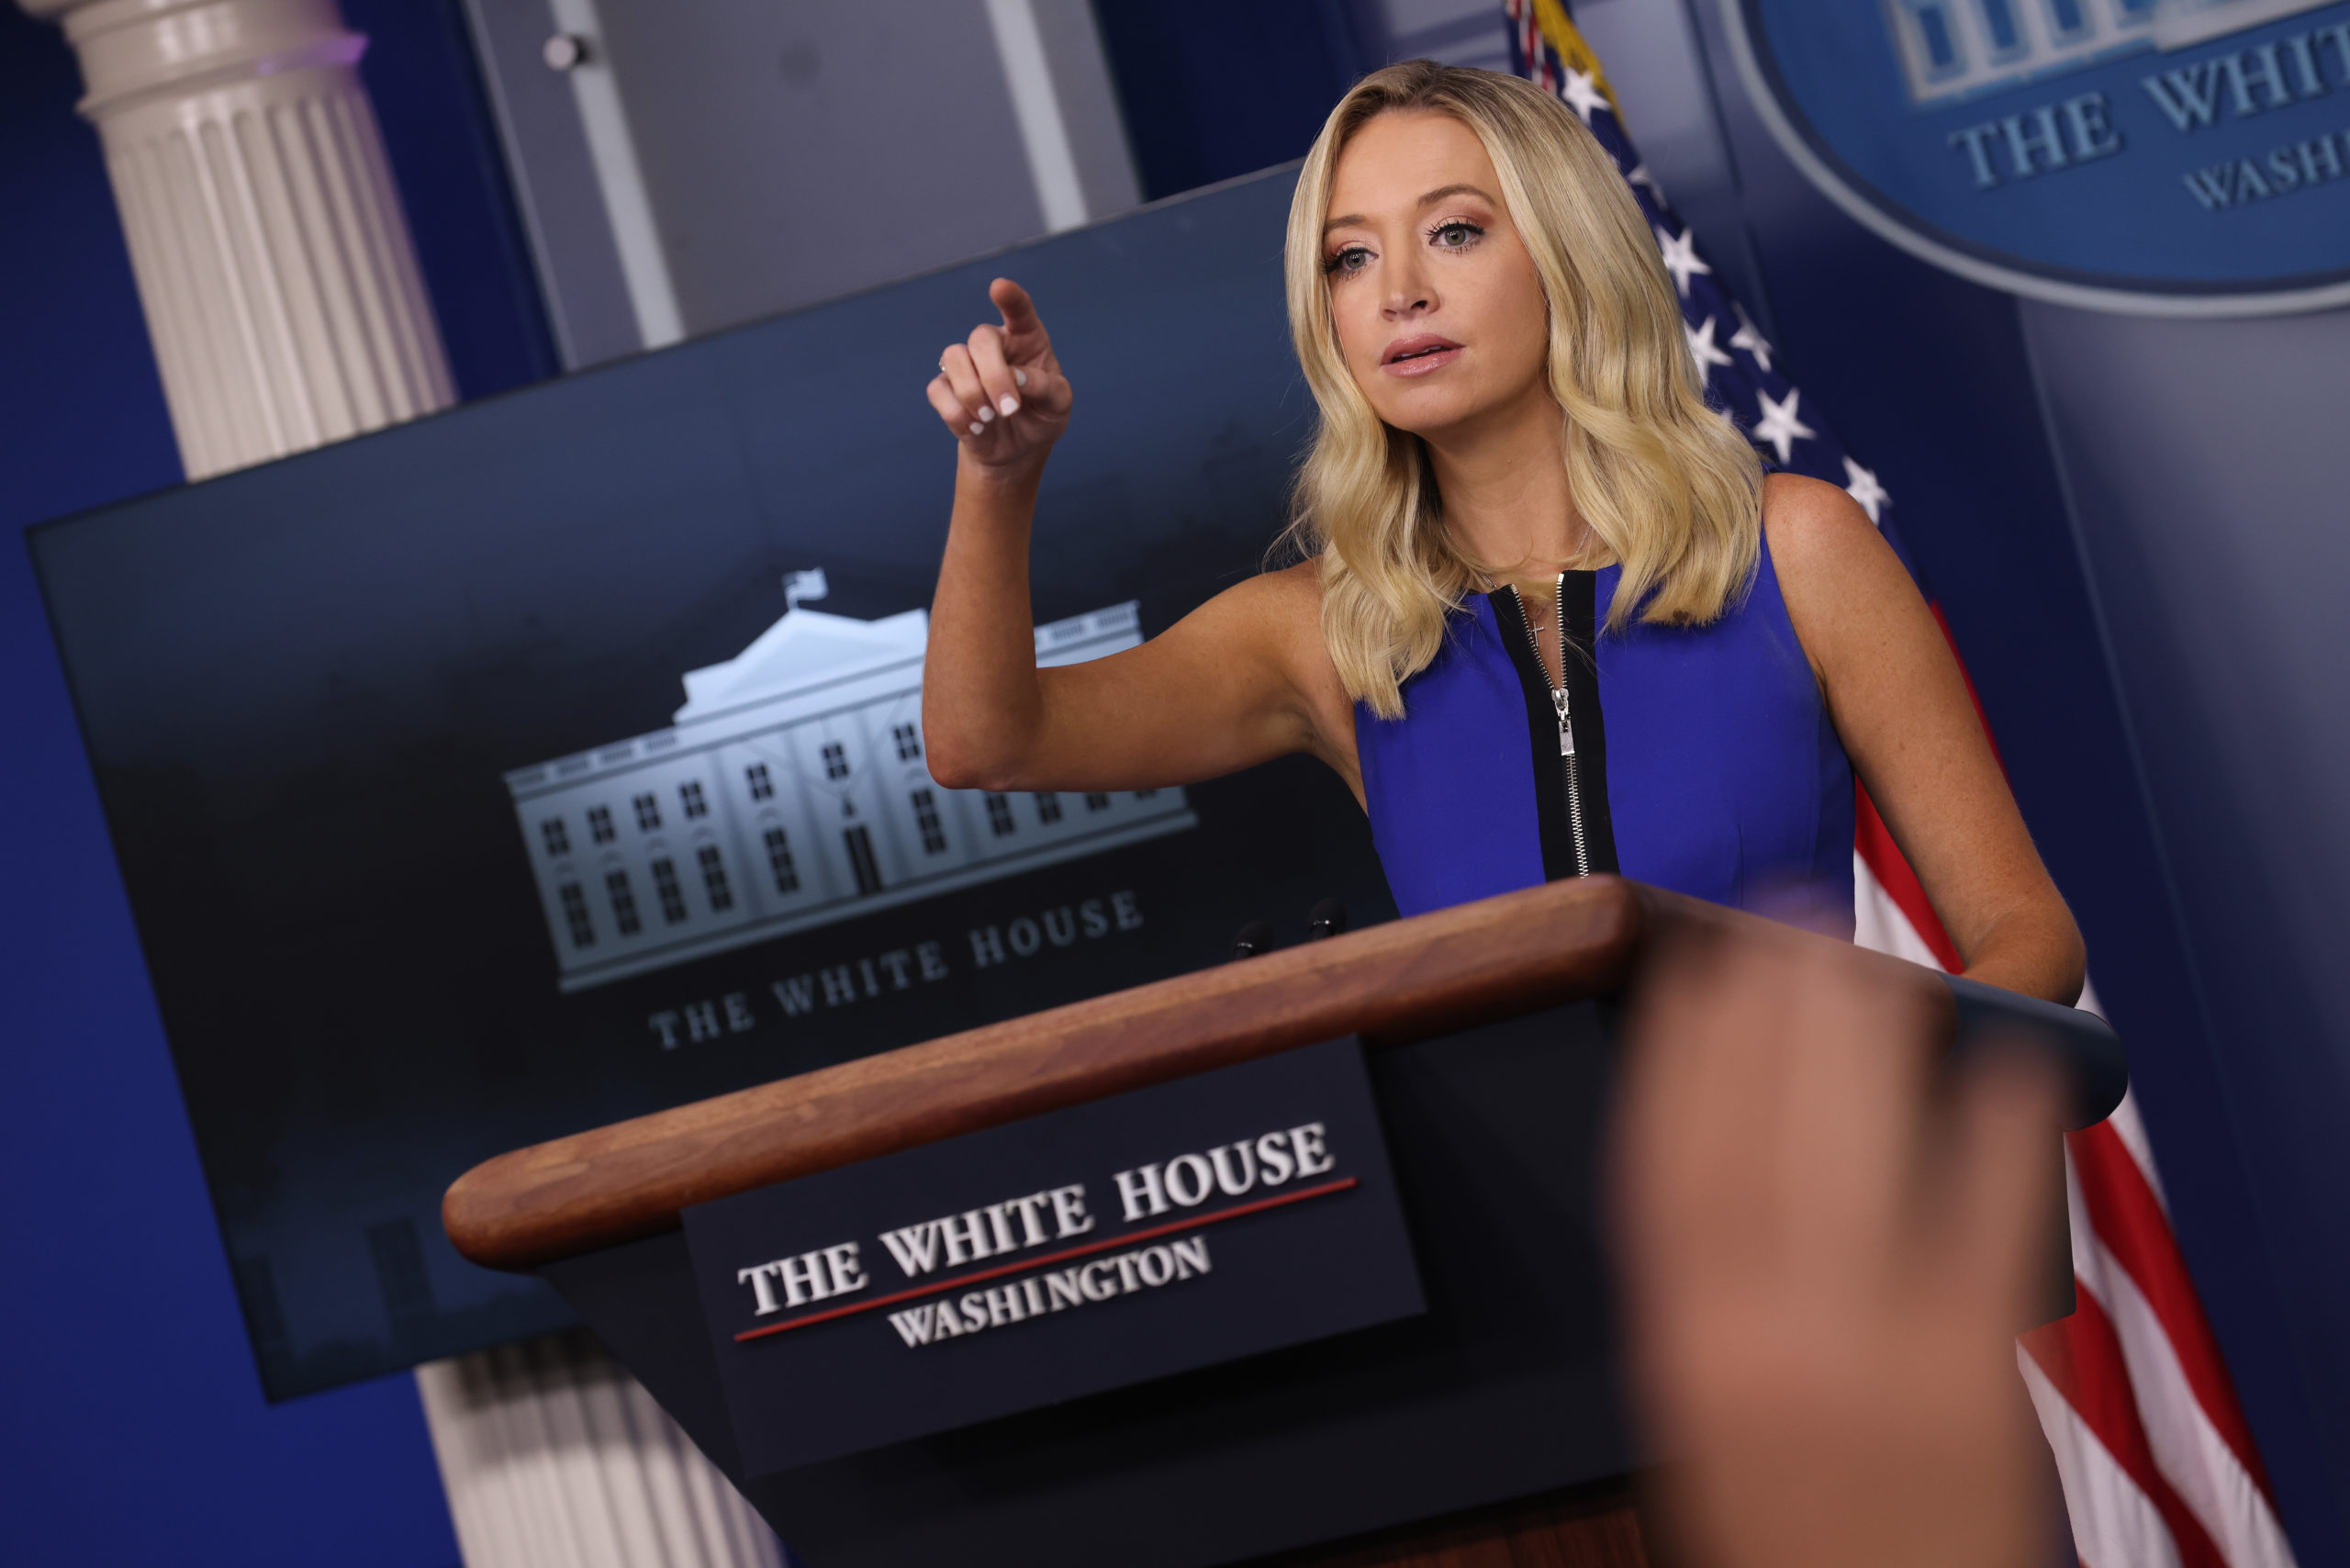 WASHINGTON, DC - SEPTEMBER 03: White House press secretary Kayleigh McEnany holds a briefing at the White House September 3, 2020 in Washington, DC. McEnany answered a range of questions relating primarily comments made by President Donald Trump yesterday in North Carolina encouraging people to vote twice in the upcoming U.S. presidential election. (Photo by Win McNamee/Getty Images)